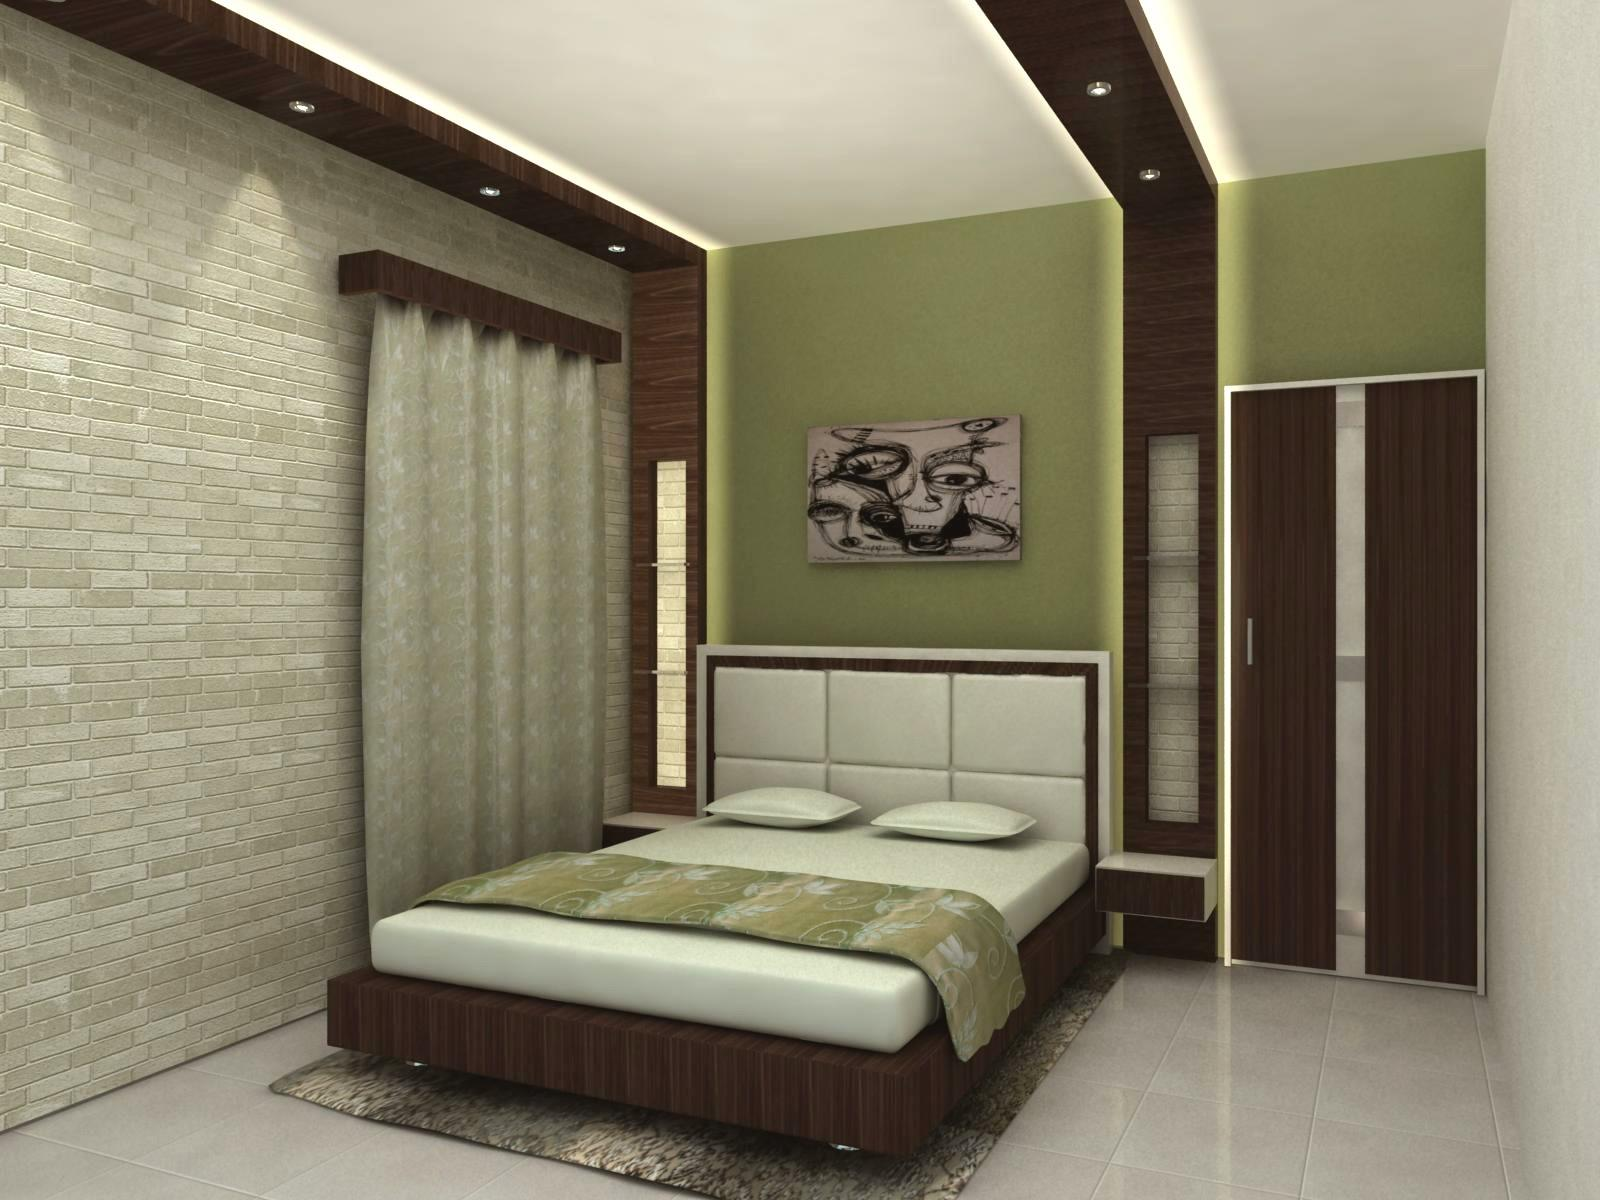 Bedroom Interior Design H6xa 681